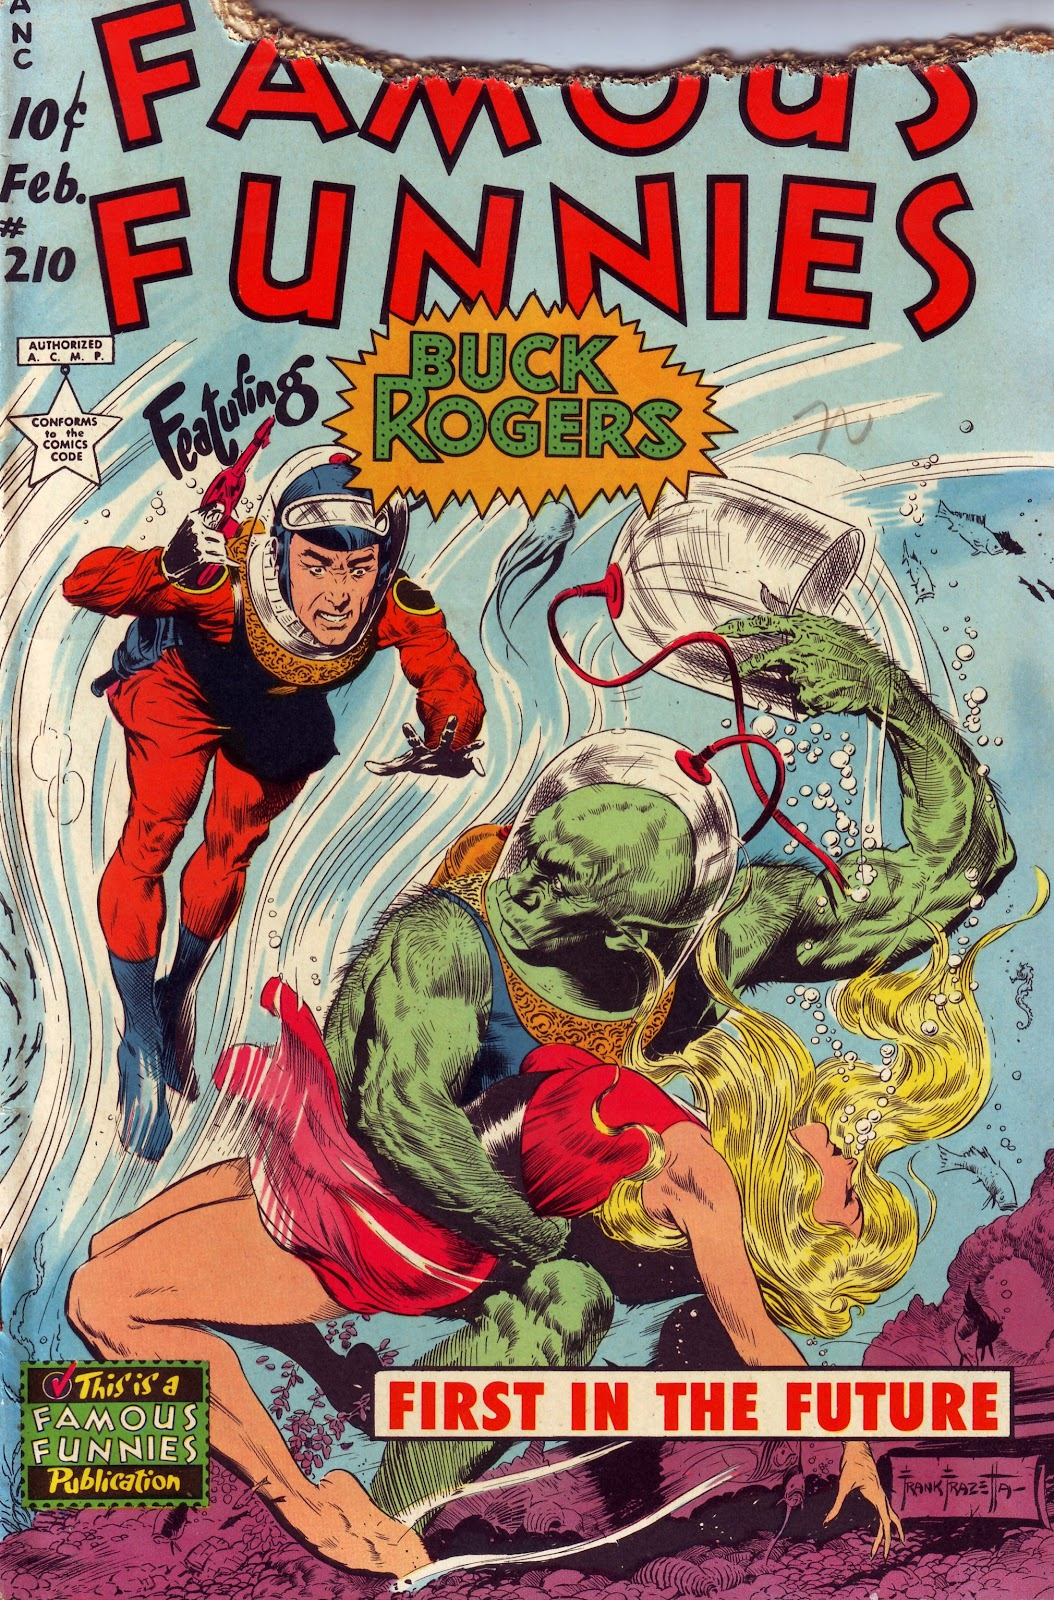 Read online Famous Funnies comic -  Issue #210 - 2